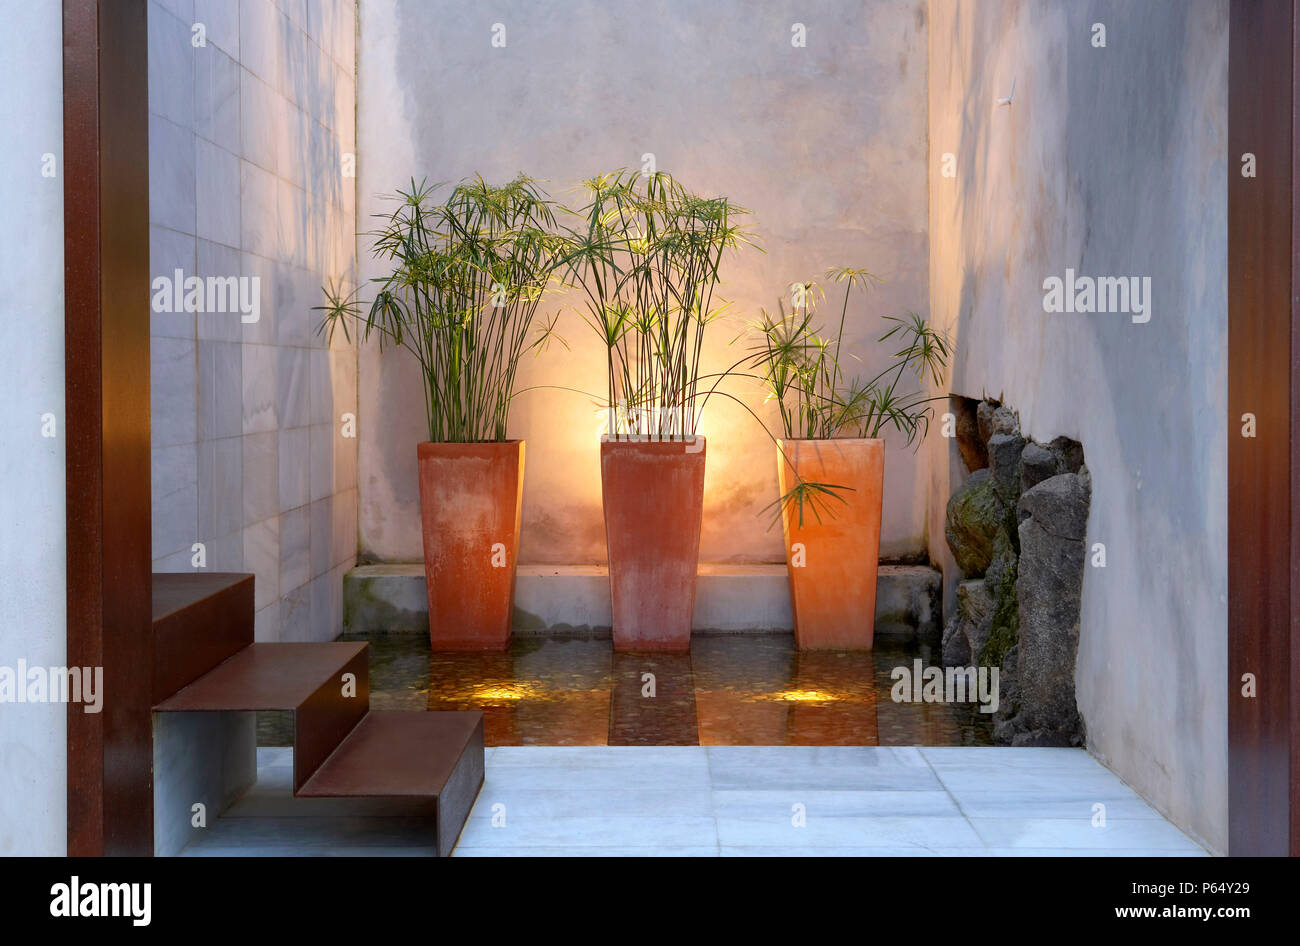 Tiled marble wall with houseplant and door steps - Stock Image